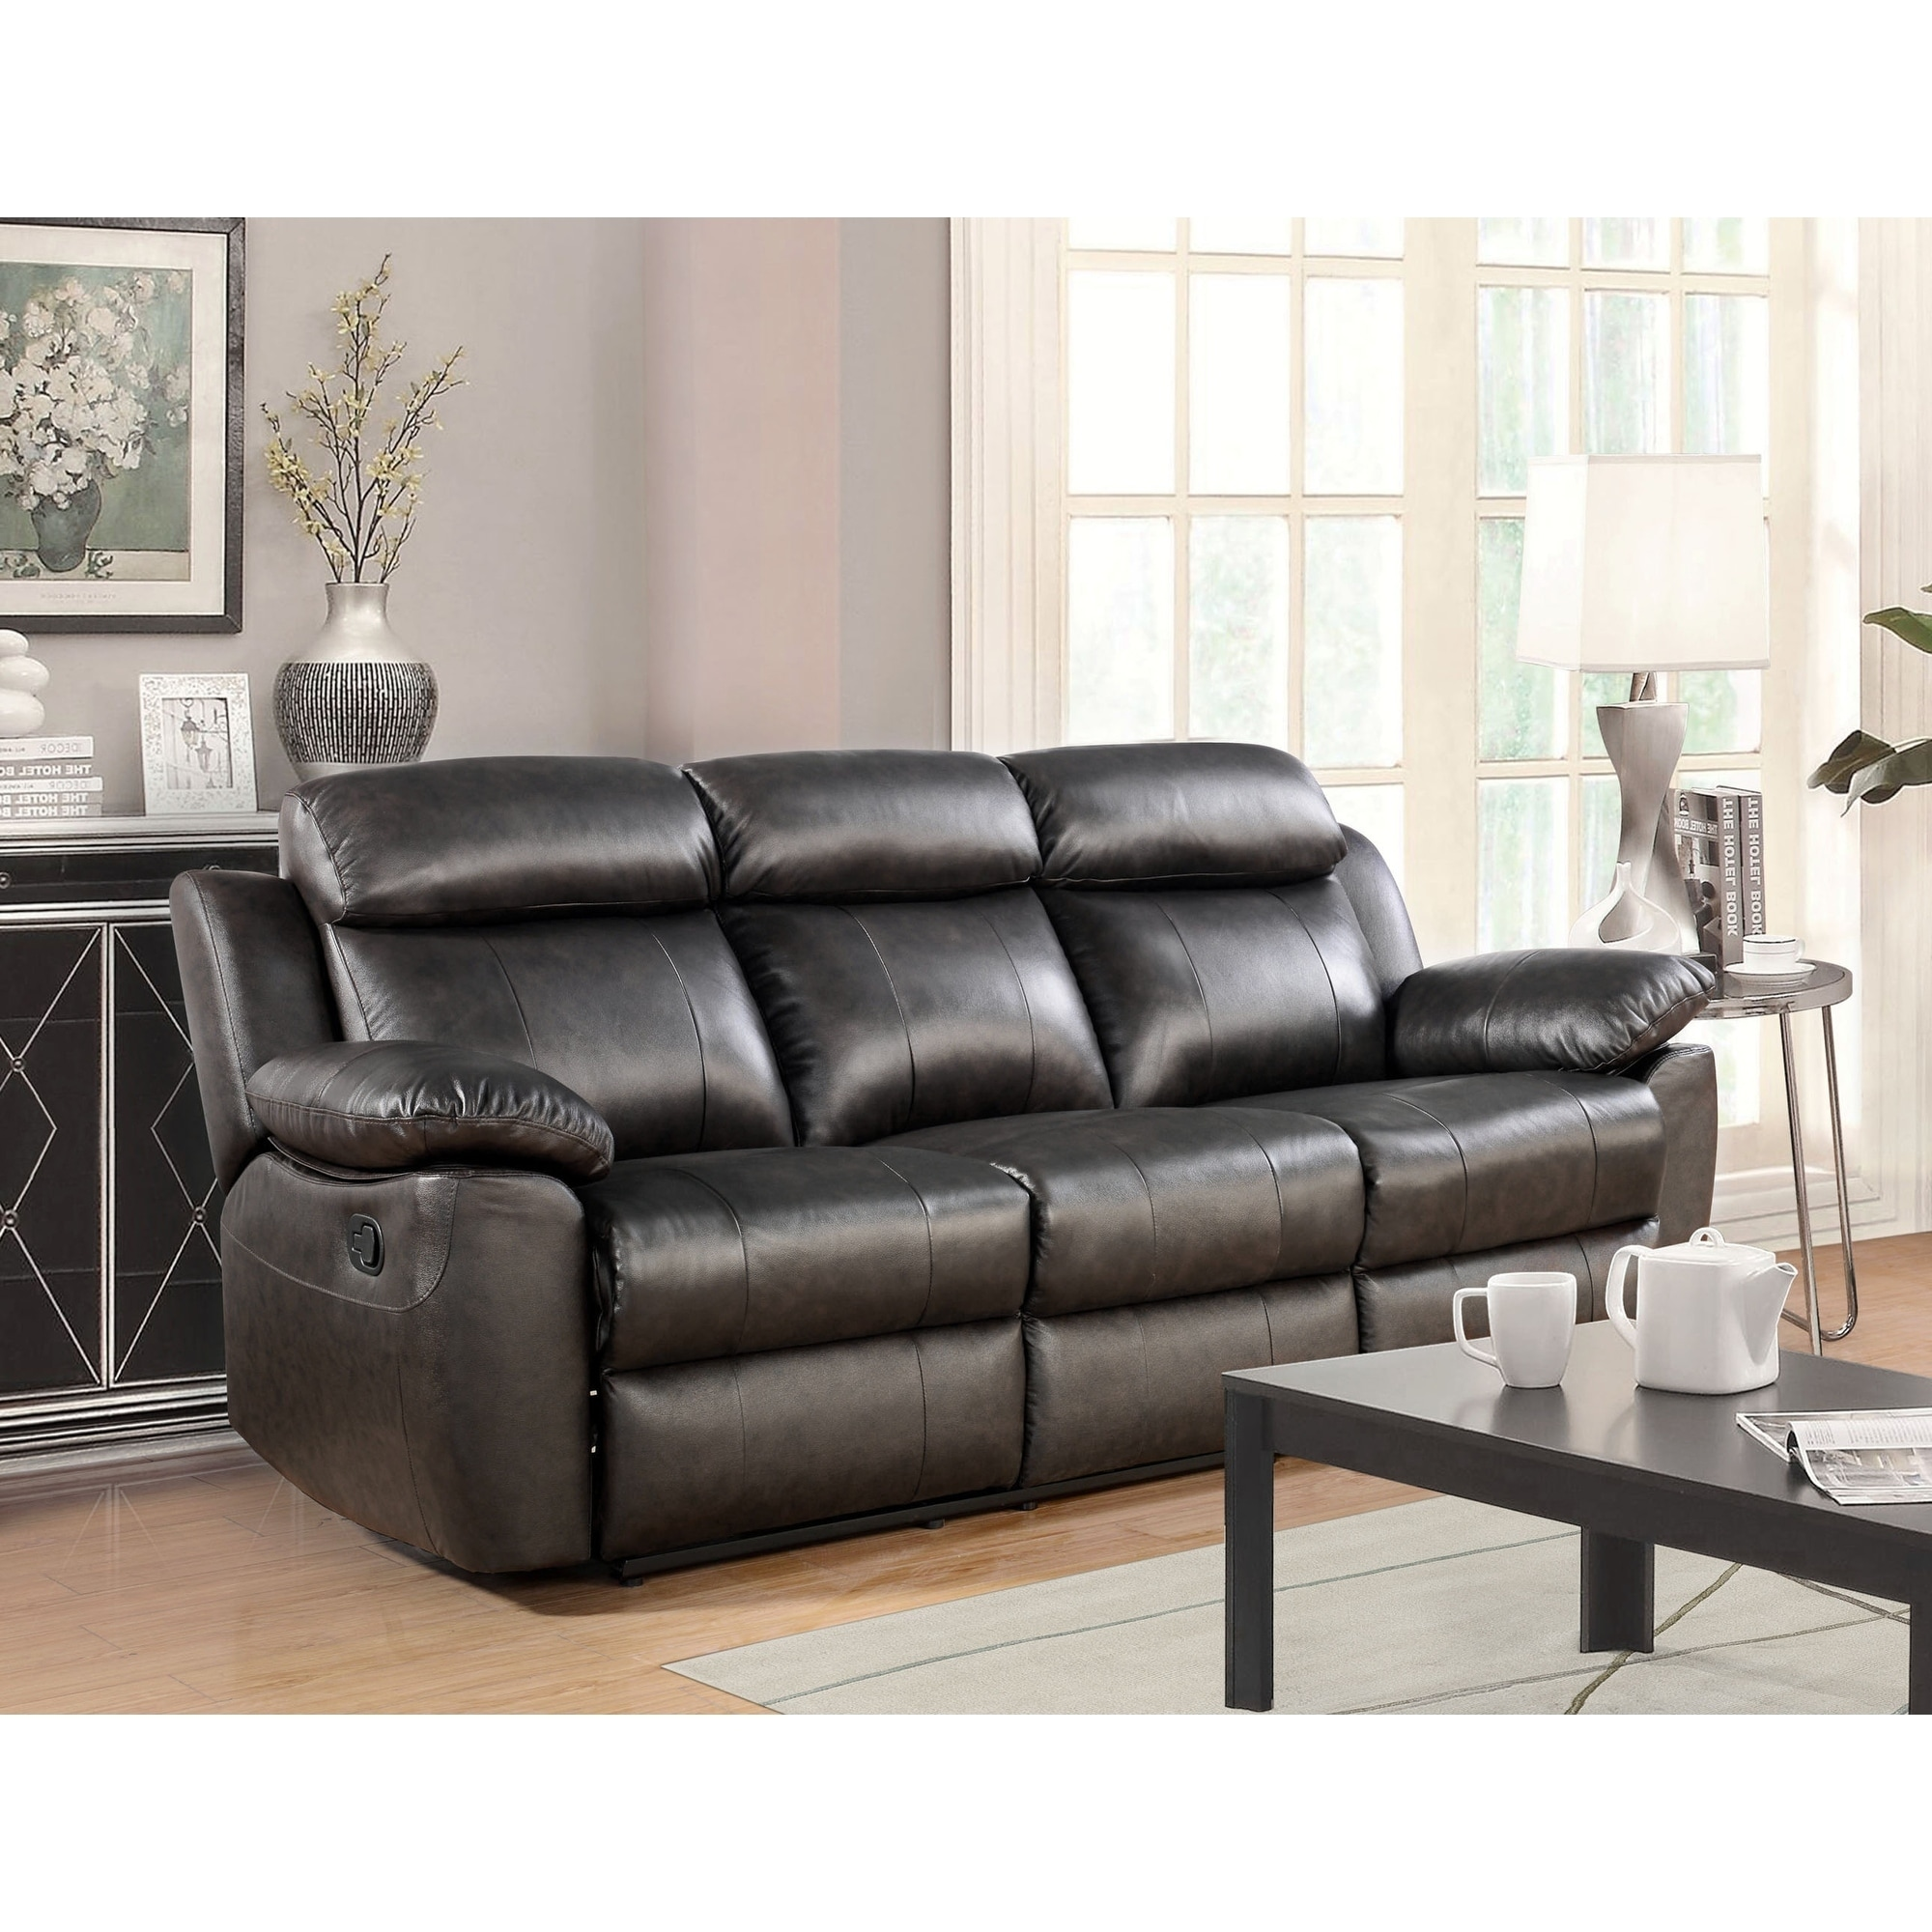 buy recliner leather sofas couches online at overstock our best rh overstock com leather recliner sofas uk leather reclining sofas uk